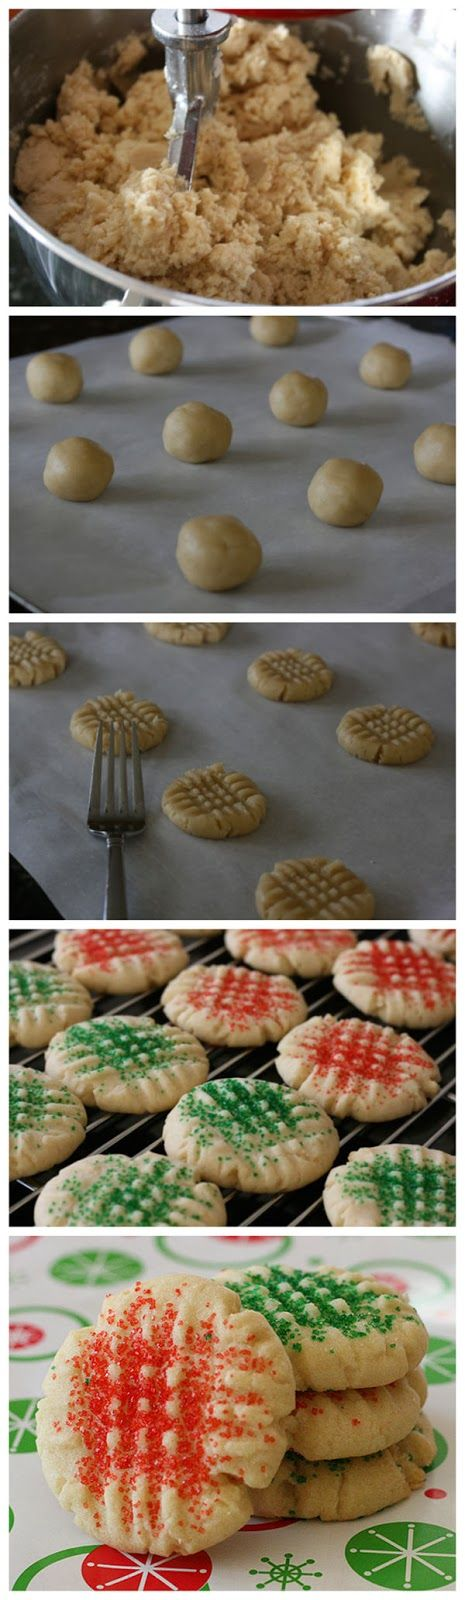 World's Best Sugar Cookies! These are light and delicate and the flavor is really delicious. I cut the recipe in half to suit the quantity I needed. Will make these again.